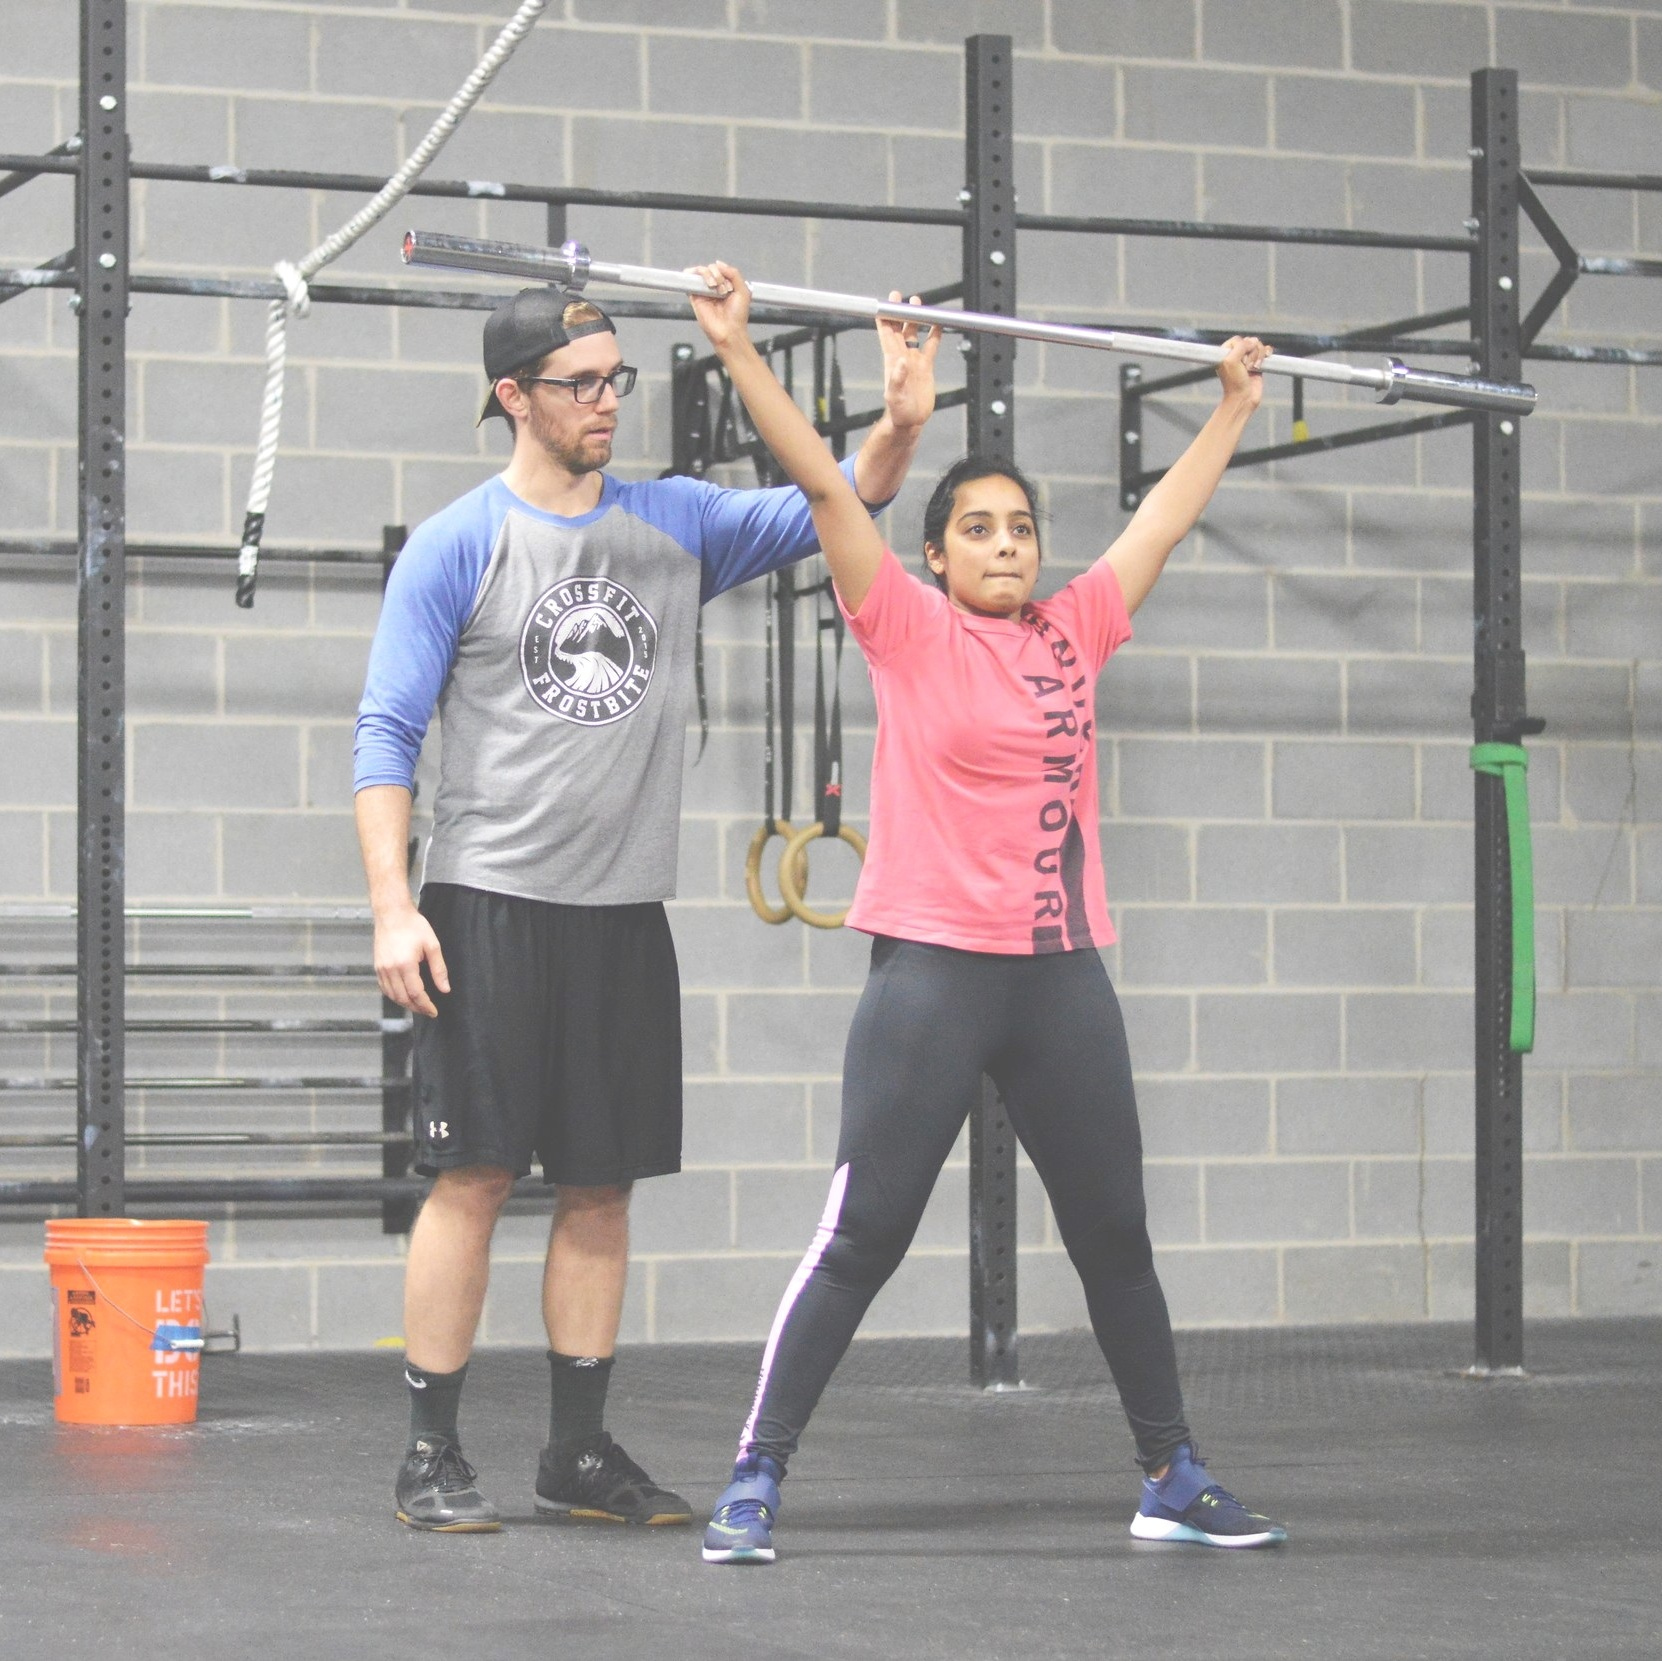 UNLIMITED - $160 - Any class, any time. The best value per class.